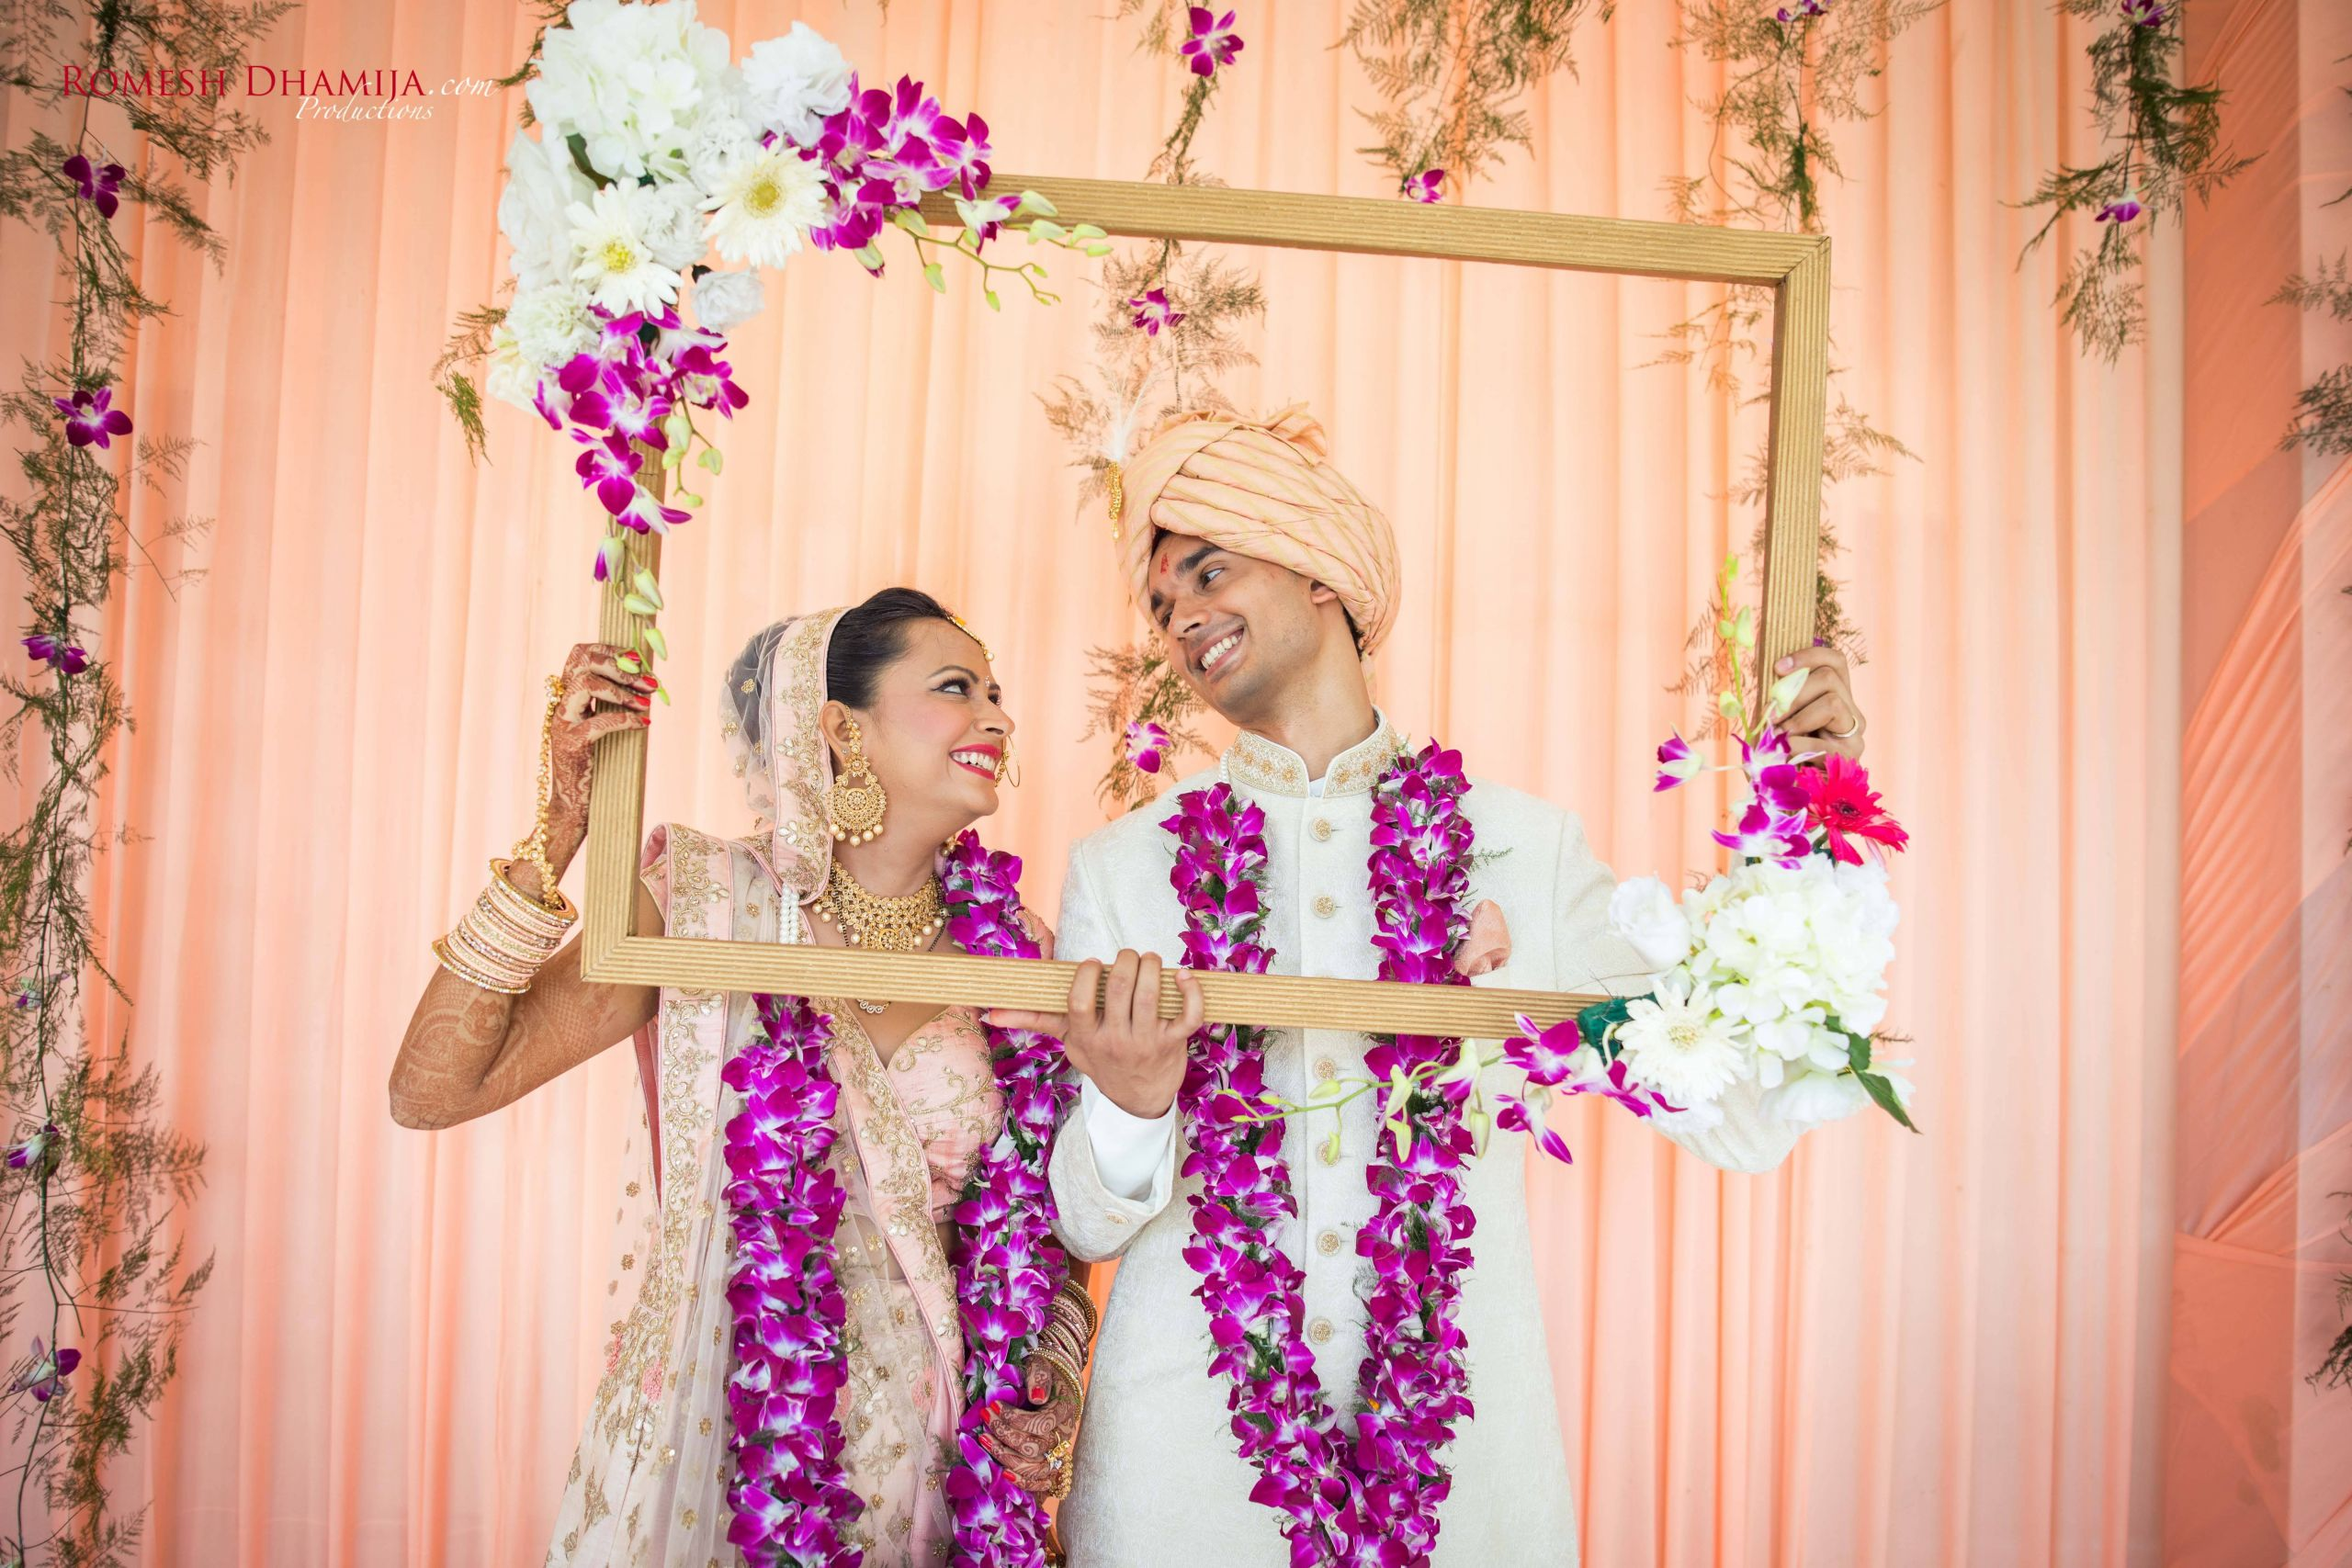 New Indian Wedding House Decorations Beautiful Couple Portrait Peach Palette Day Wedding